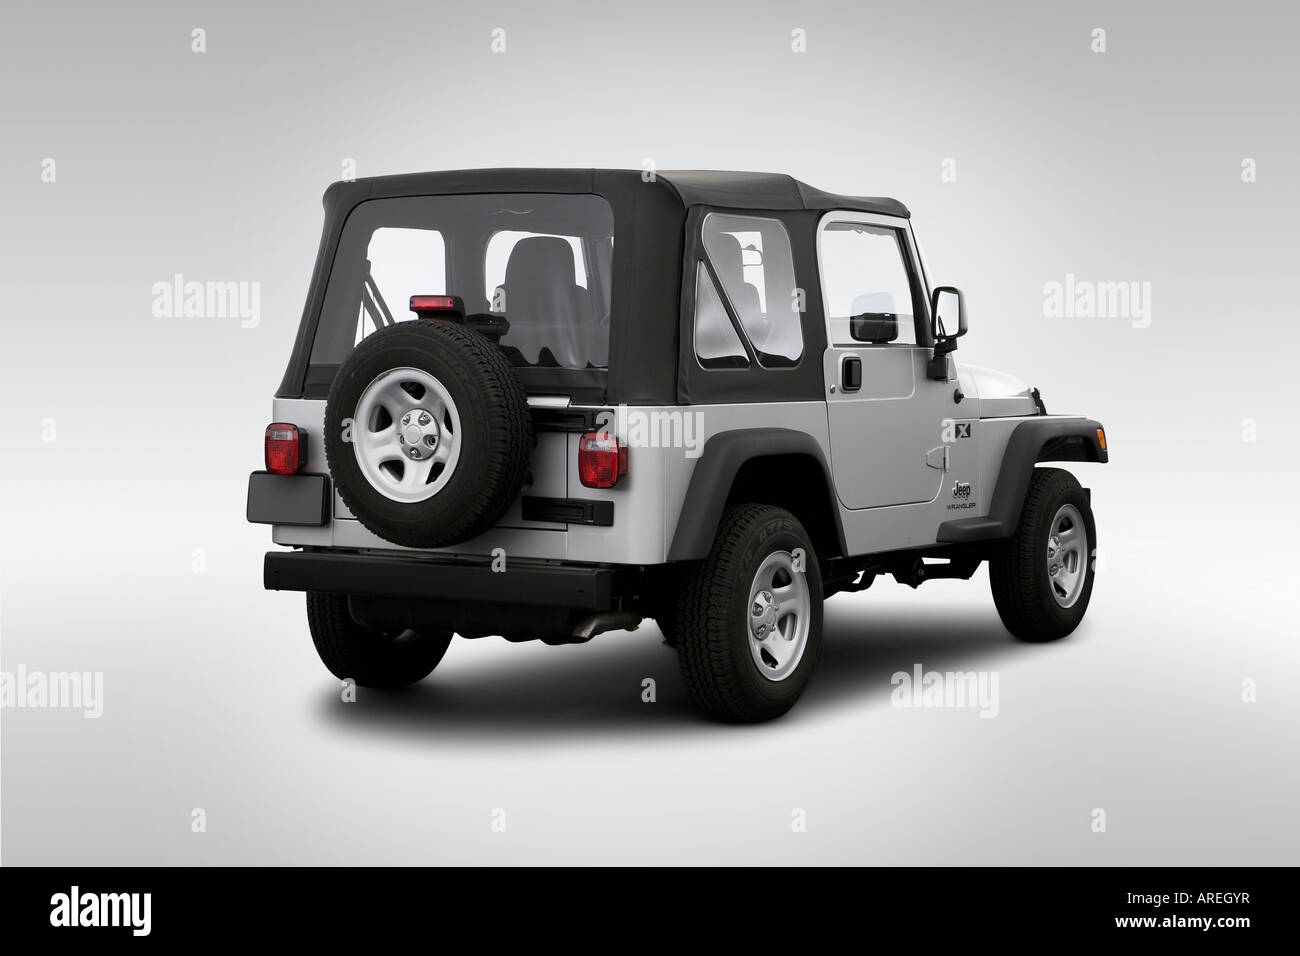 2006 Jeep Wrangler X In Silver   Rear Angle View   Stock Image